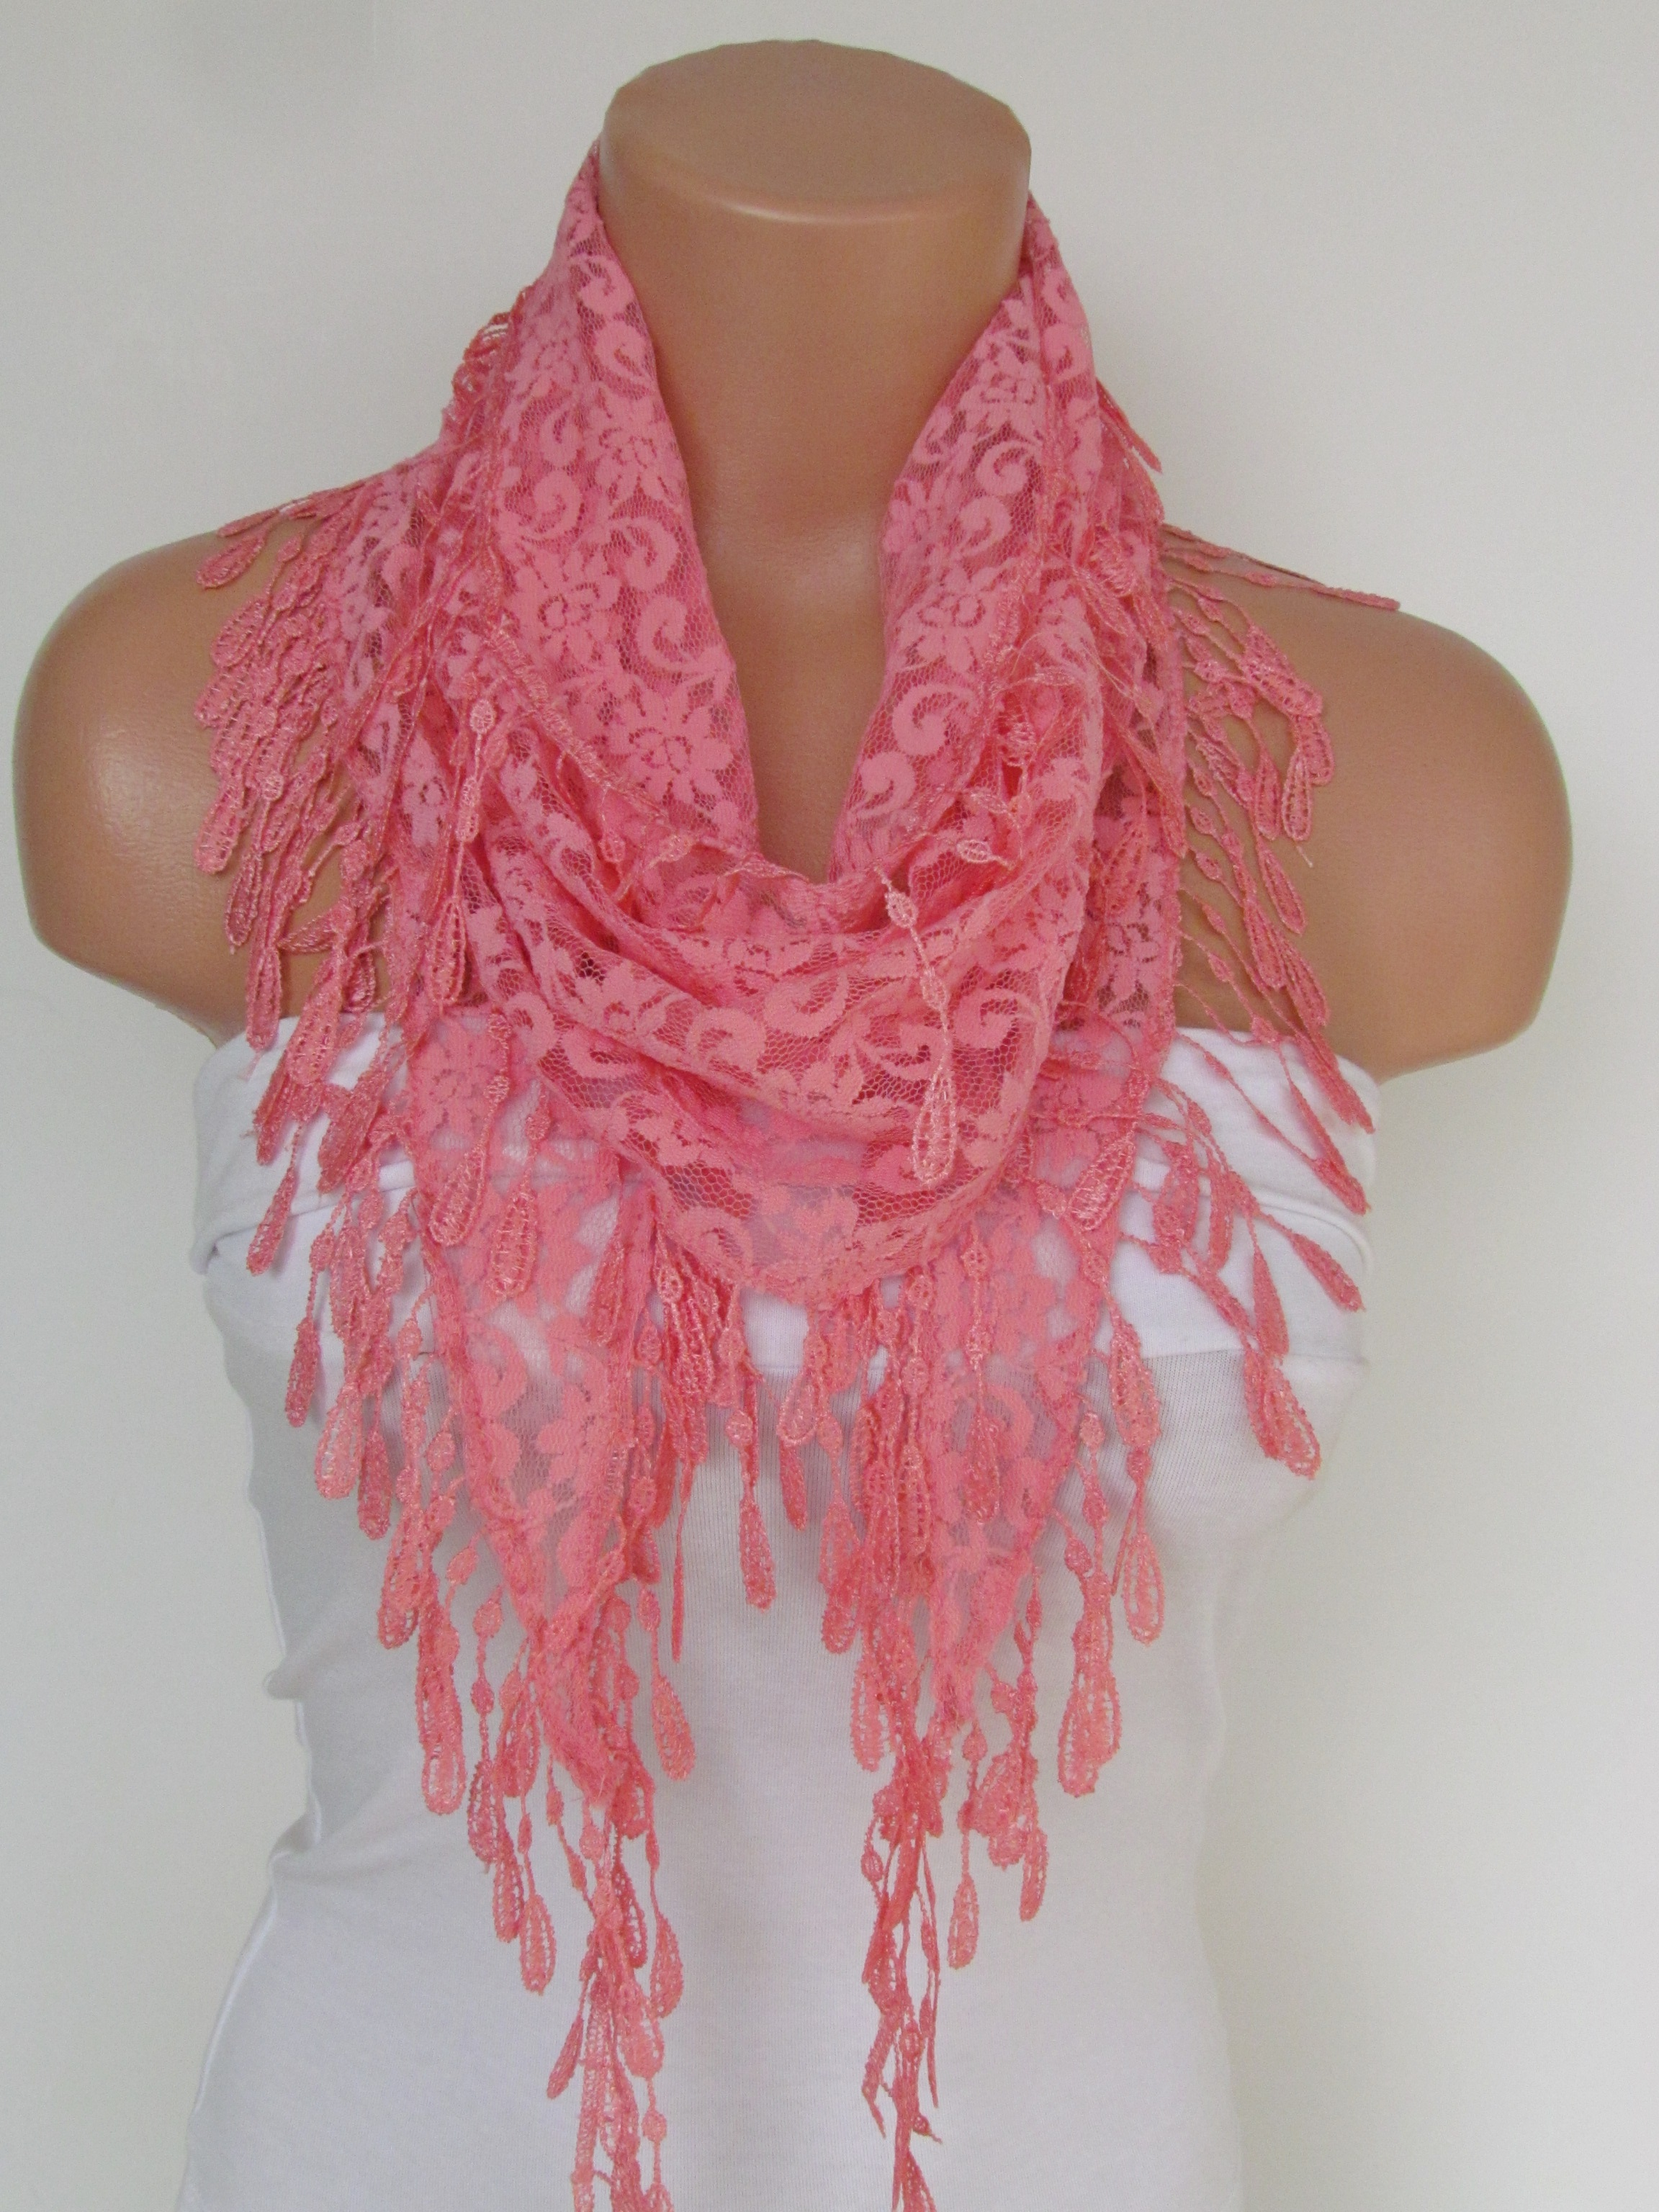 5926d42cb558f Salmon Lace Scarf With Fringe-Fall Fashion Scarf-Headband-Necklace- Infinity  Scarf-New Season Access on Luulla